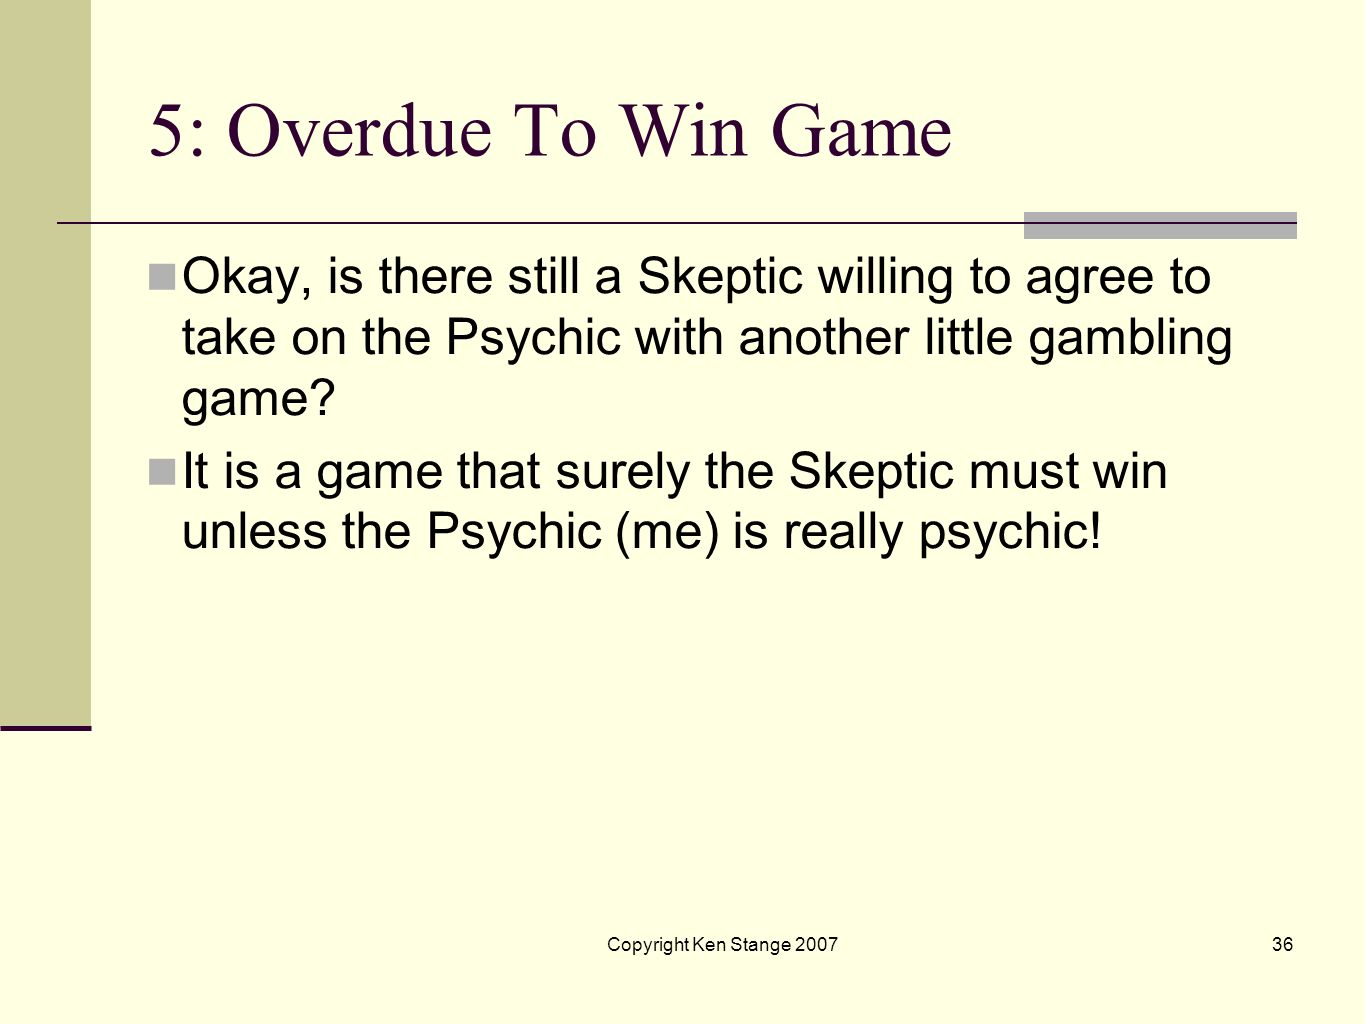 5: Overdue To Win Game Okay, is there still a Skeptic willing to agree to take on the Psychic with another little gambling game